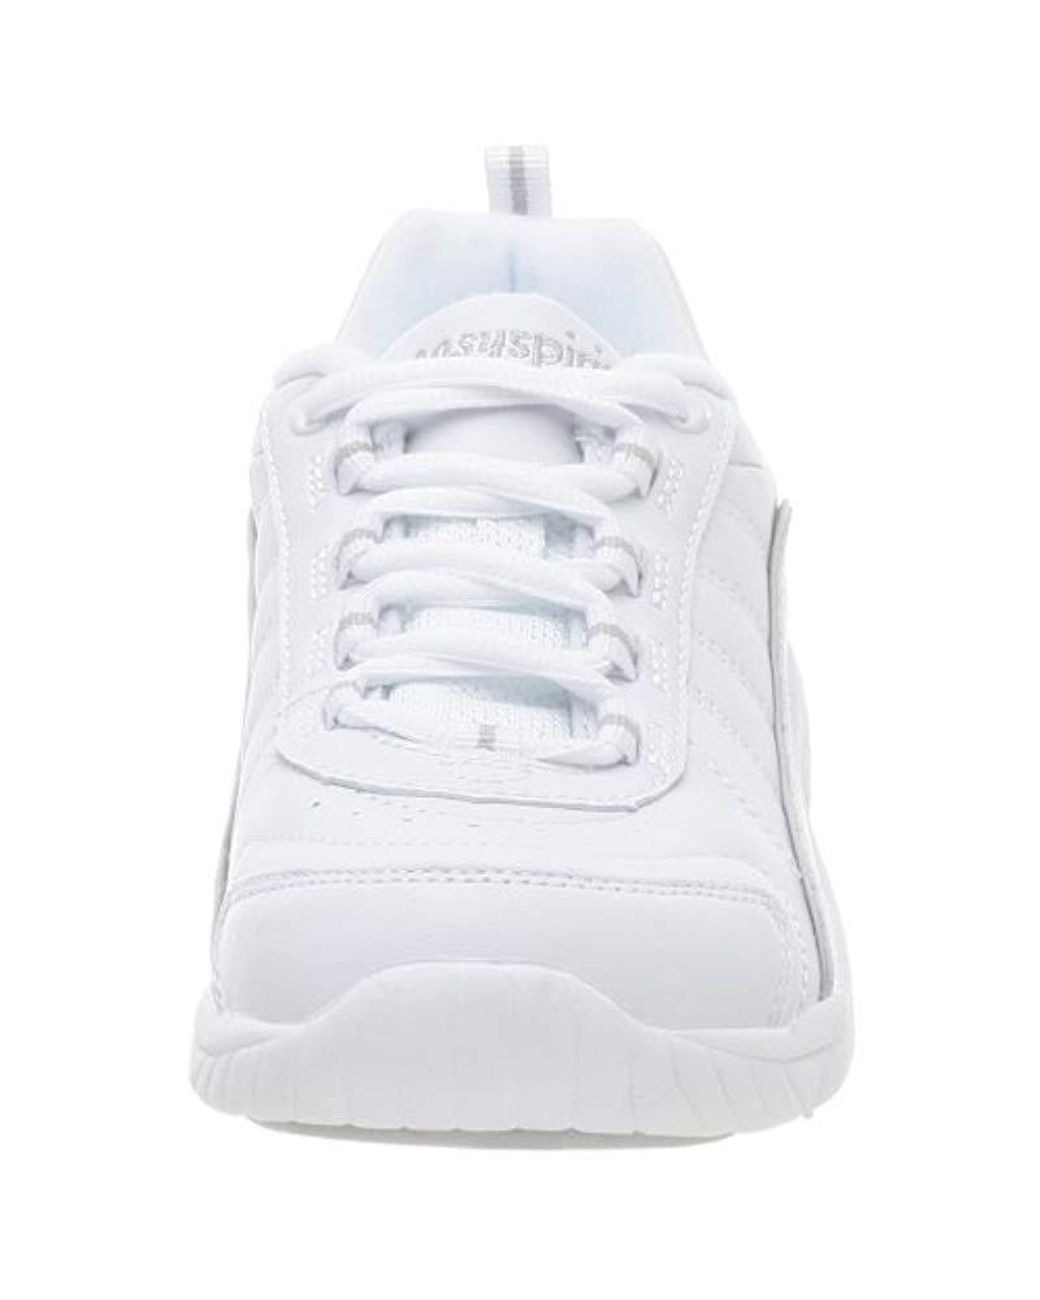 dfd28ea5a01e5 Lyst - Easy Spirit Punter Athletic Shoe in Gray - Save 24%